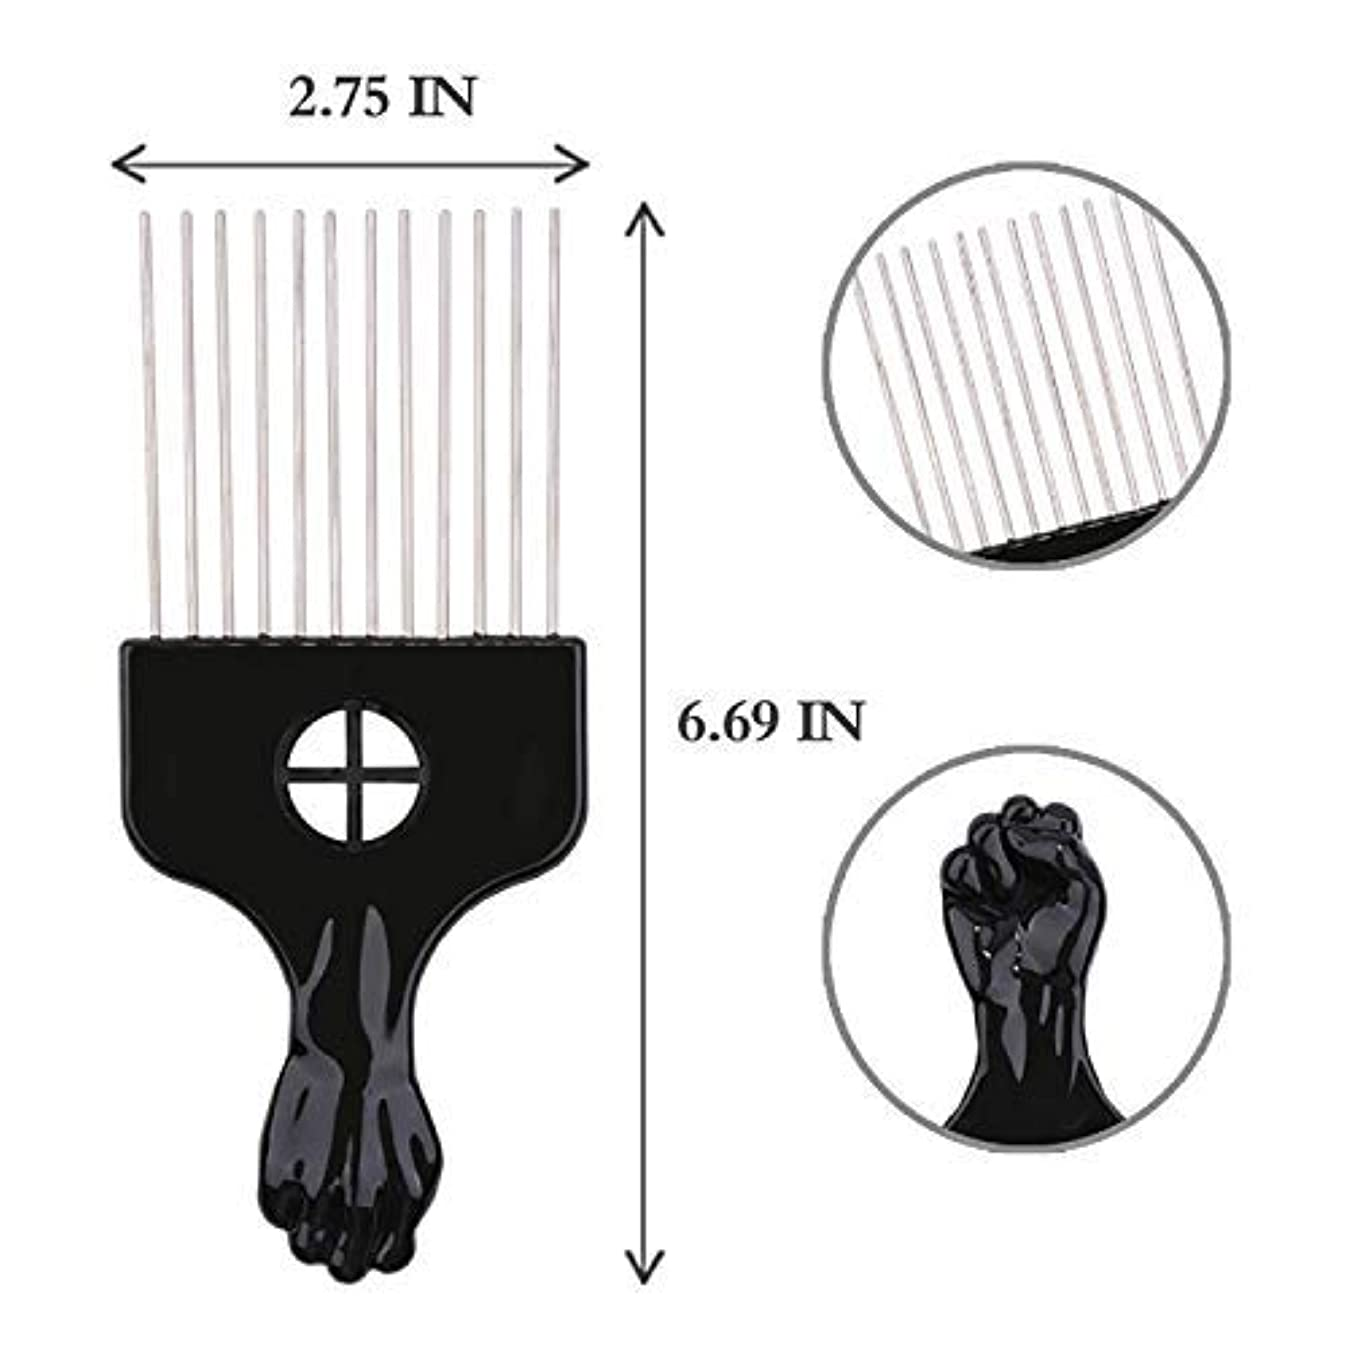 年金雪の交通渋滞Afro Hair Pik - Afro Styling Pick, Metal #2410: Untangle, Style, Lift (1 Pack), Hair style, lifts your hair, untangles...